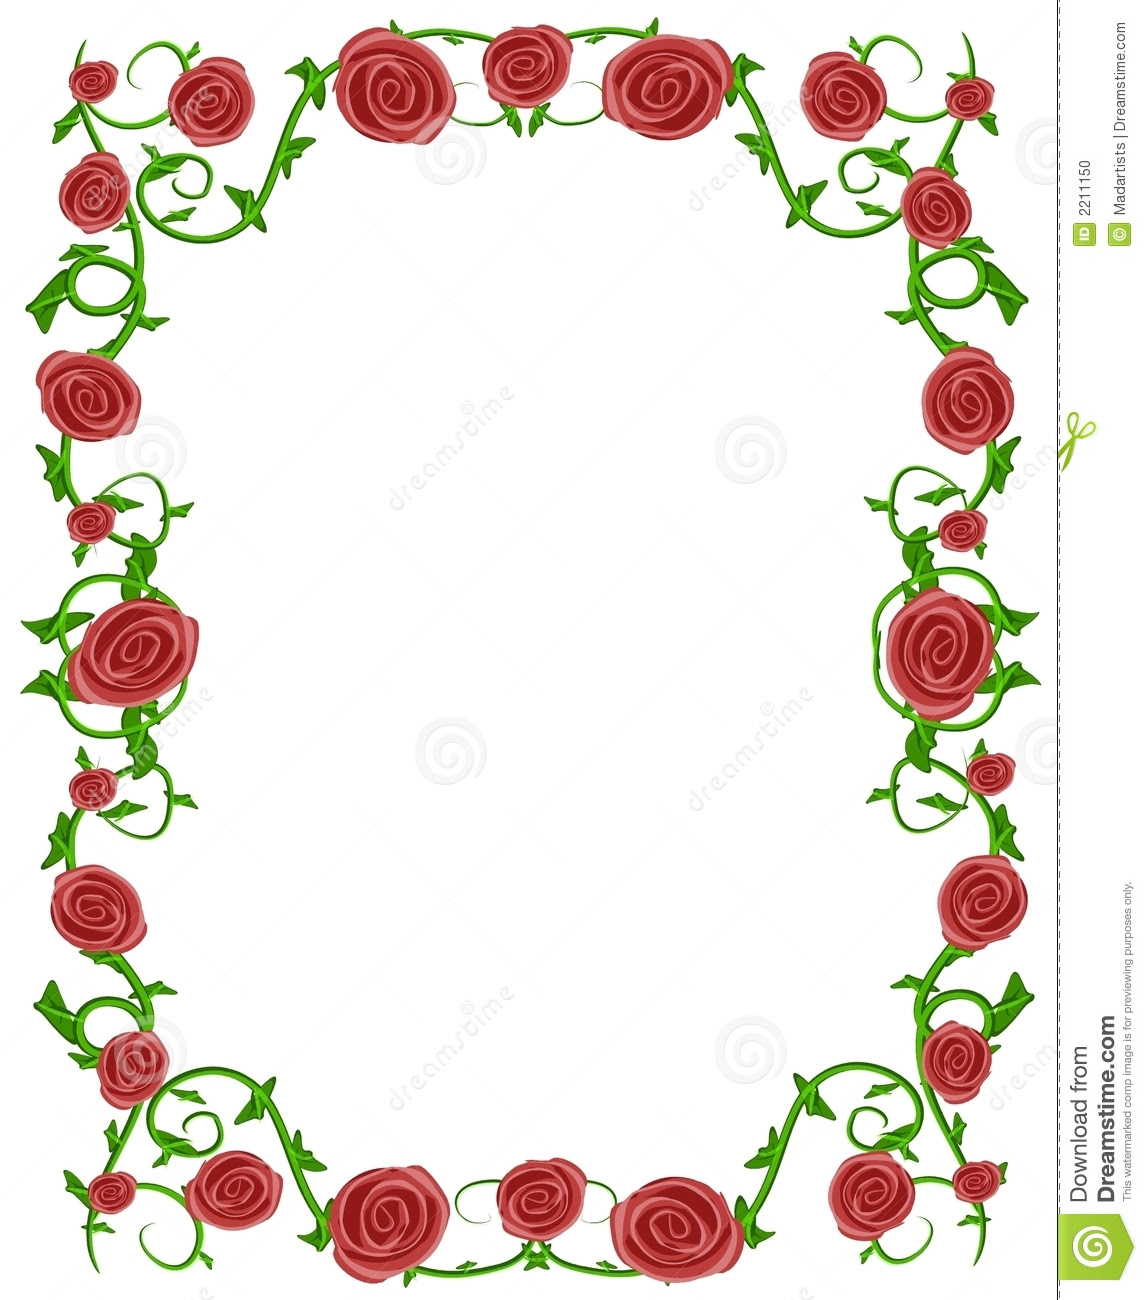 pink flower border clip art red roses floral photo frame 2211150